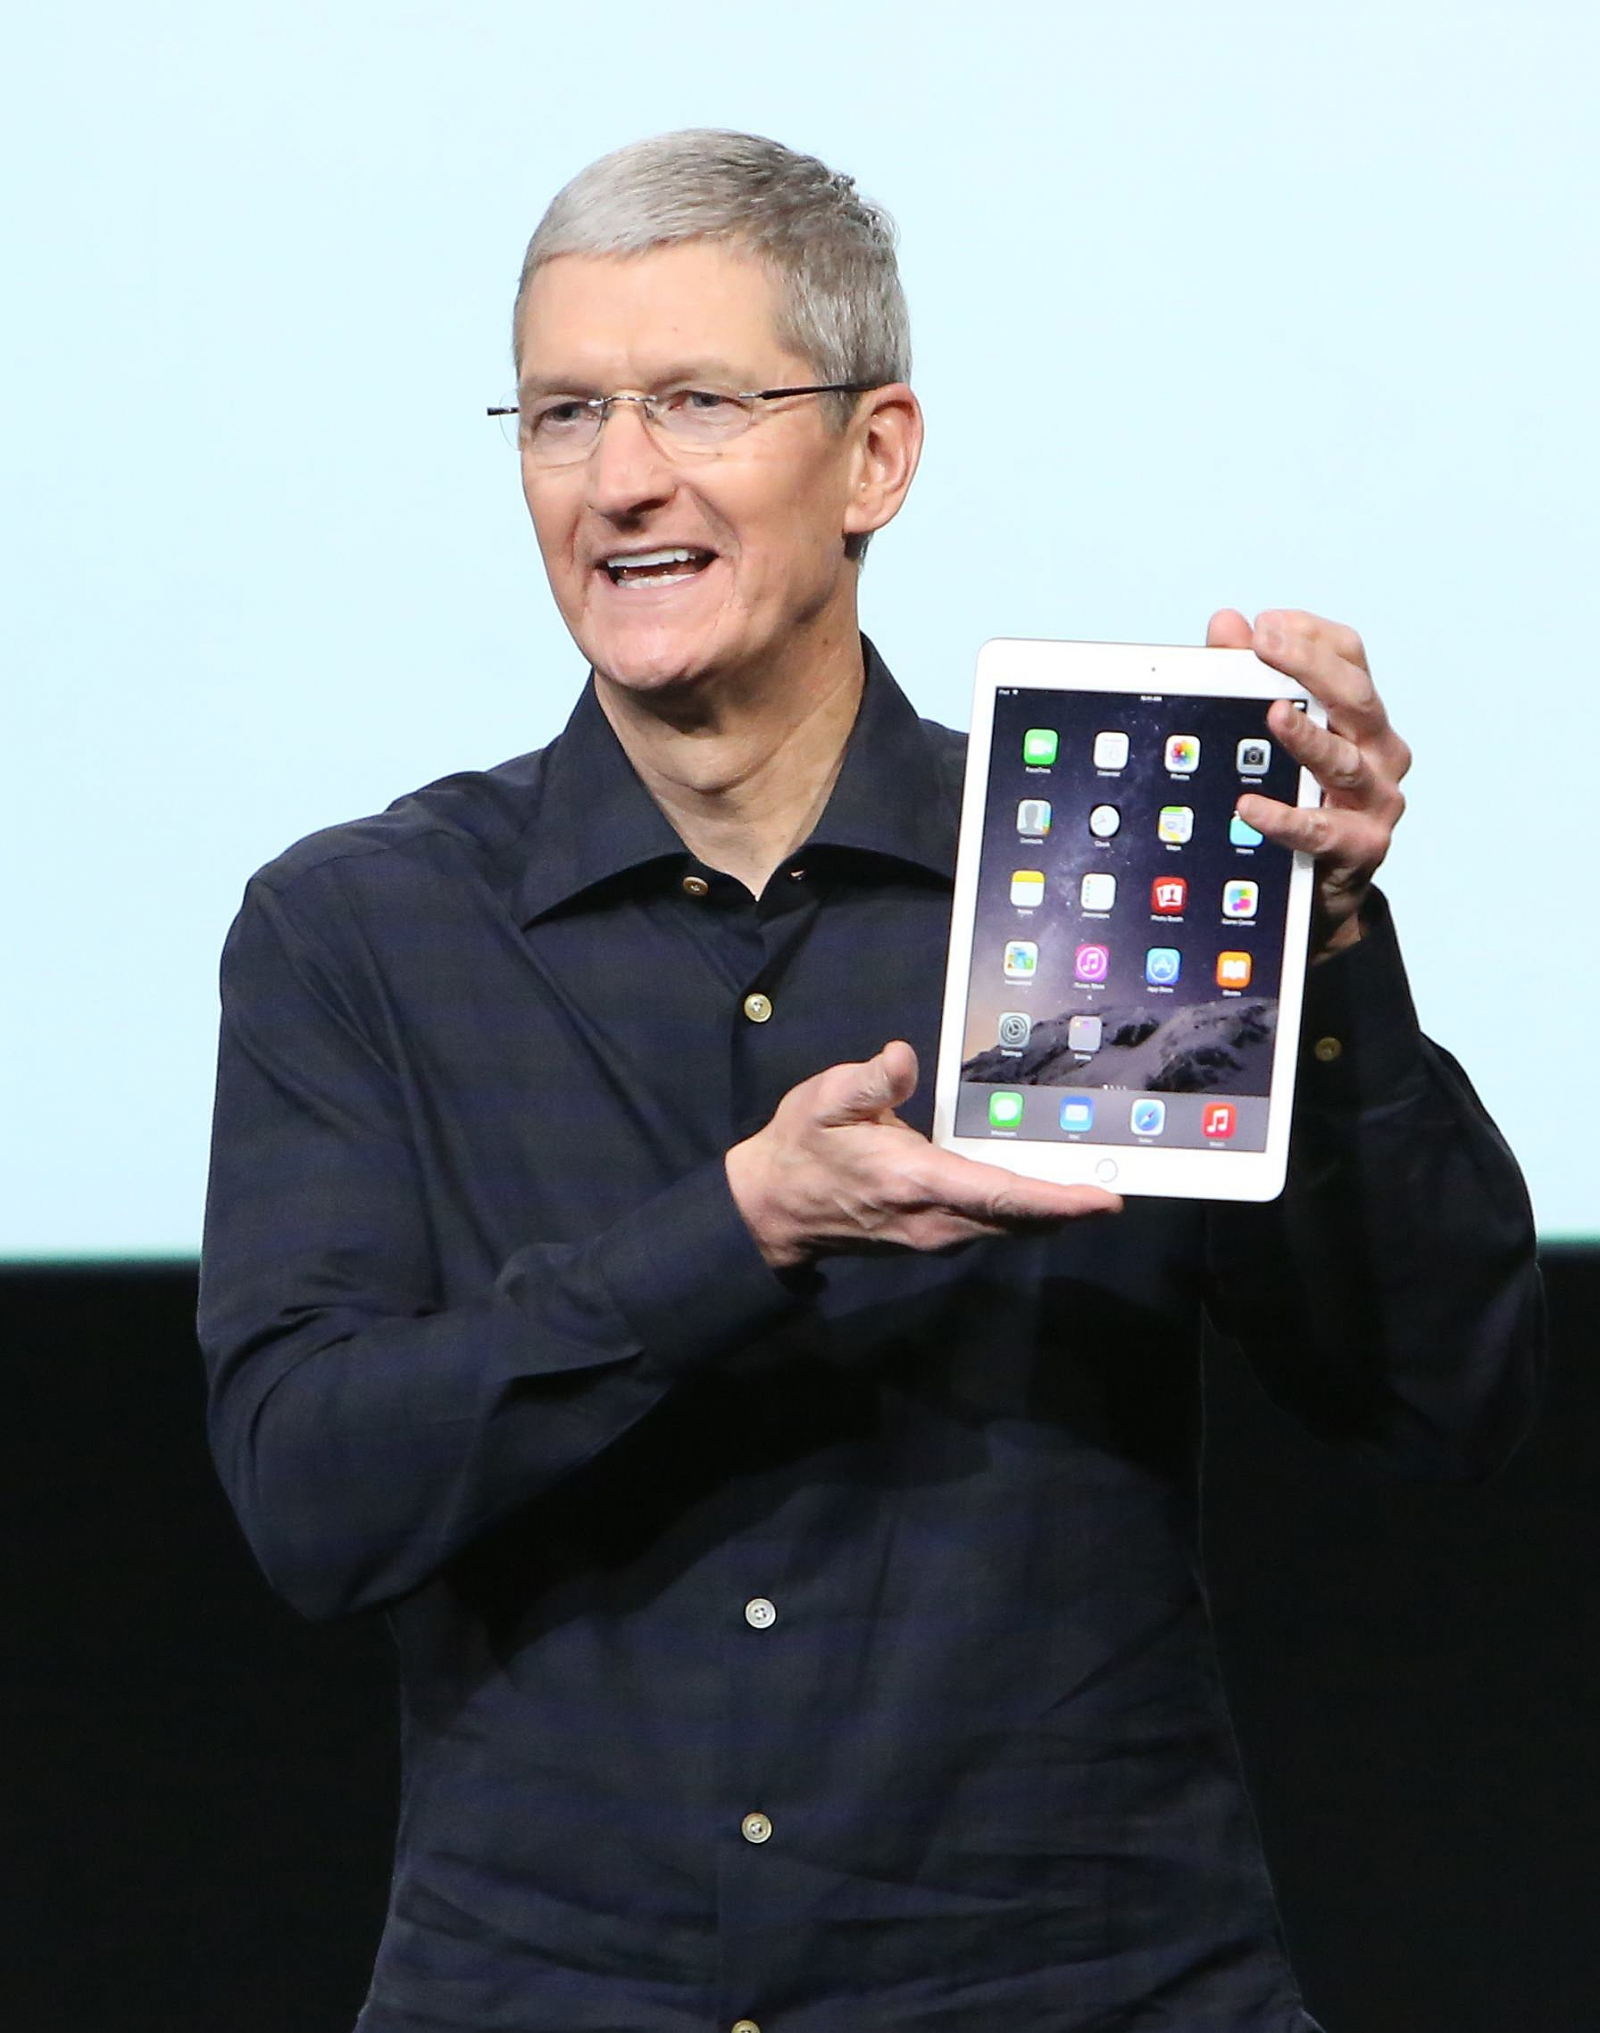 Apple CEO Tim Cook holds an iPad Air 2 during a presentation at Apple headquarters in Cupertino, California October 16, 2014